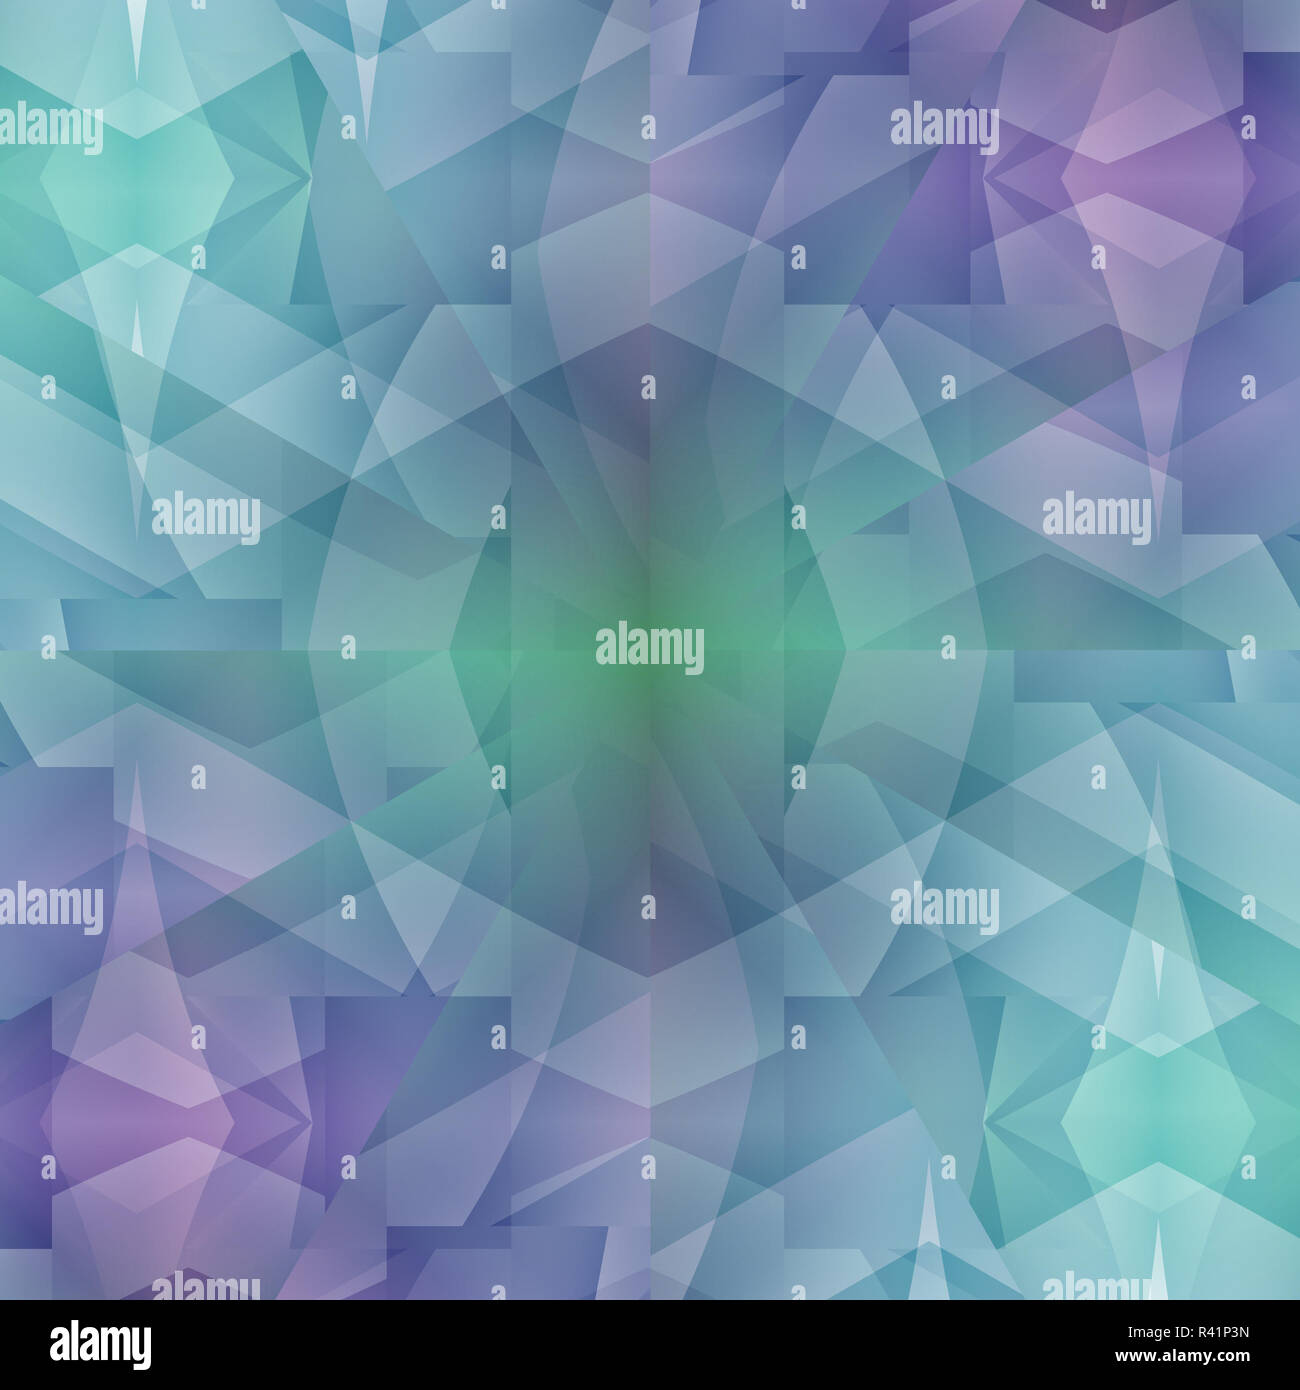 Modern abstract geometric background, seamless manifold diamond pattern in turquoise, blue and purple shades, crystal Stock Photo